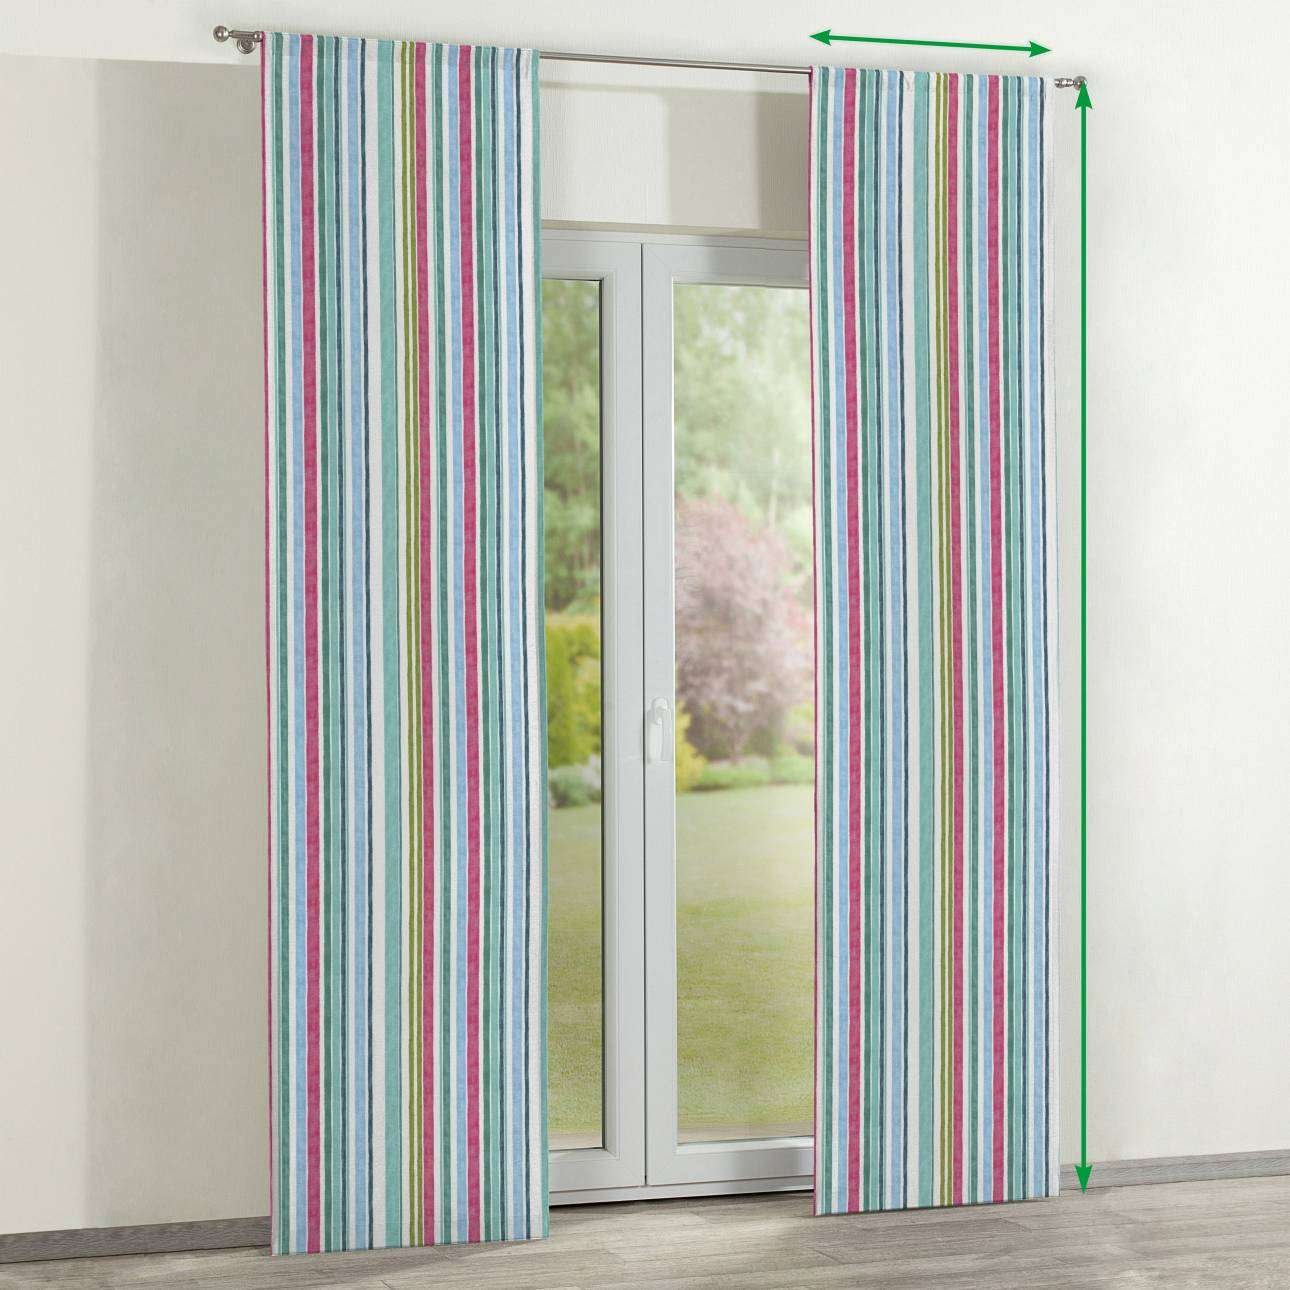 Slot panel curtains – Set of 2 in collection Monet, fabric: 140-03